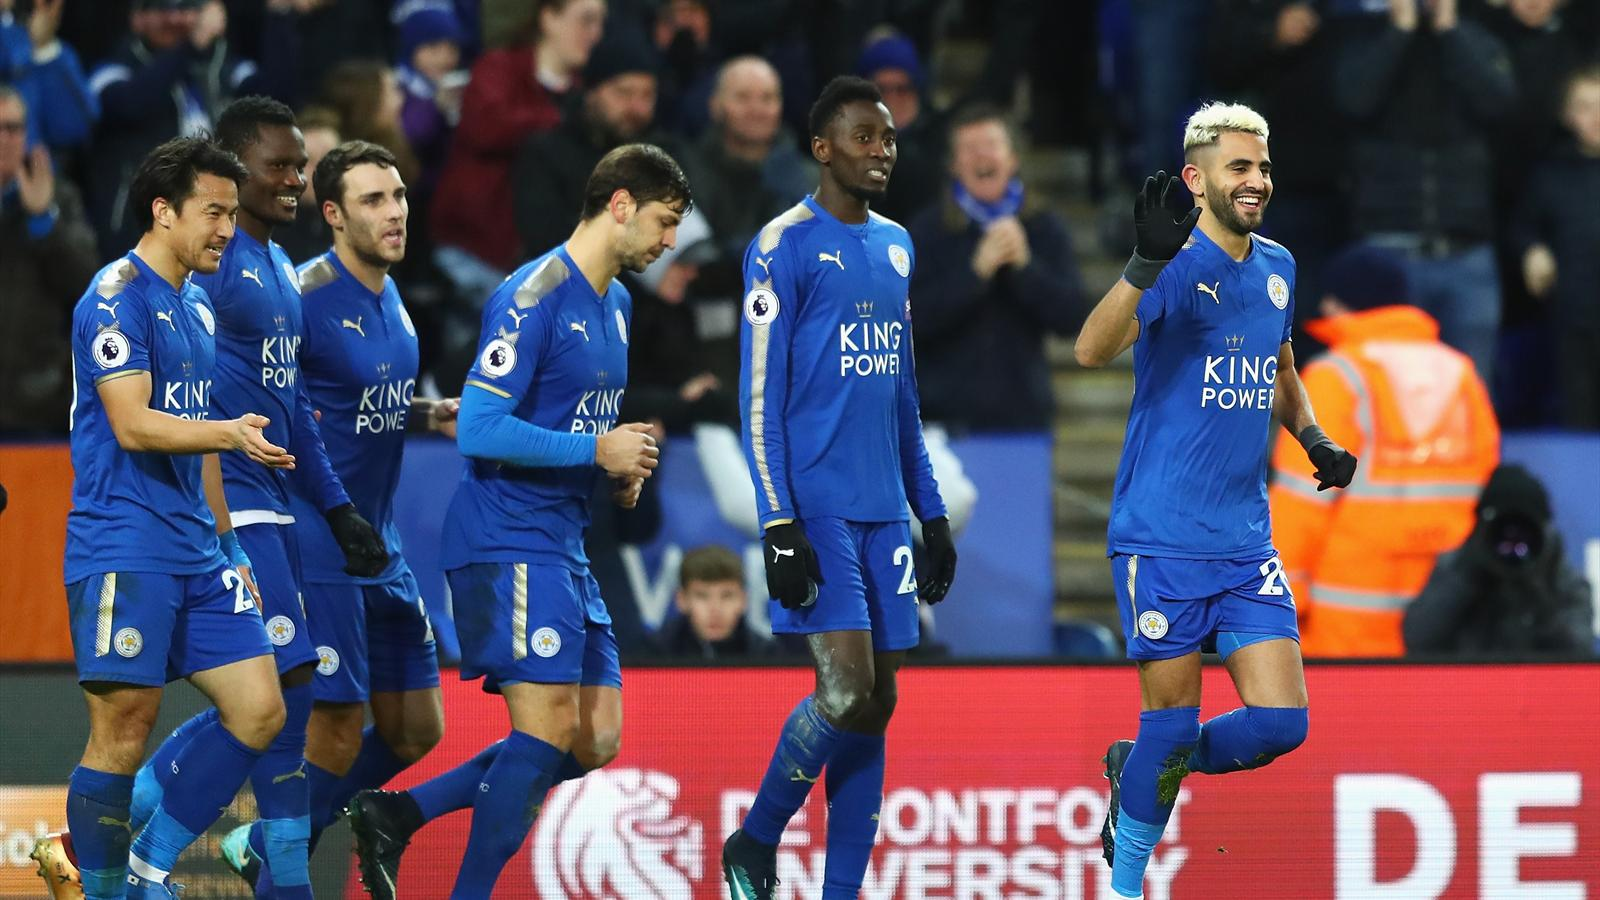 Video Le Footballeur Le Plus Riche Du Monde Joue A Leicester